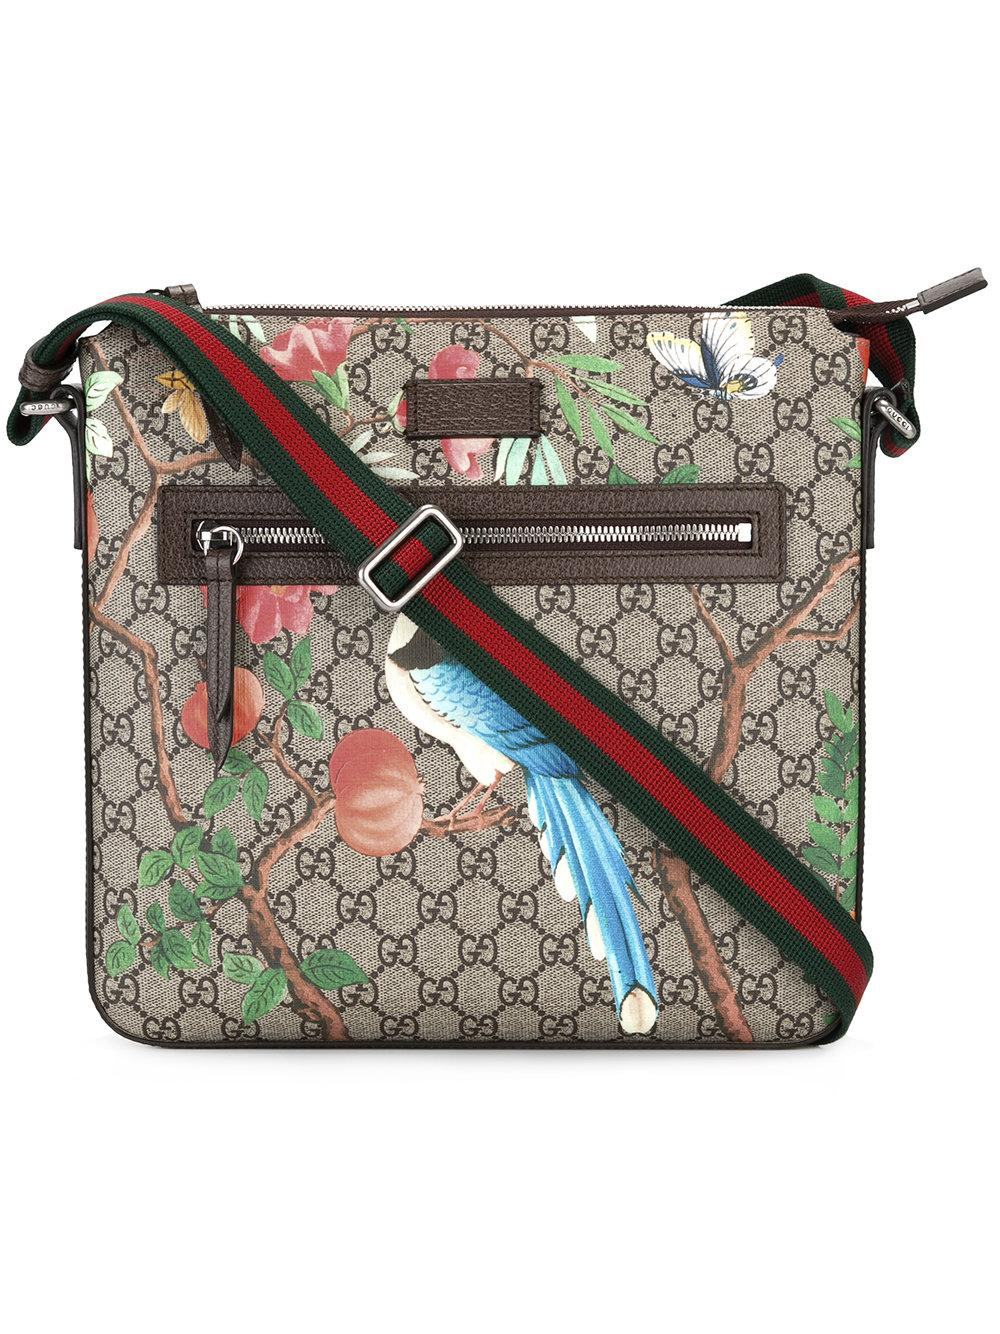 131374fcddb Lyst - Gucci Tian Gg Supreme Messenger Bag in Brown for Men